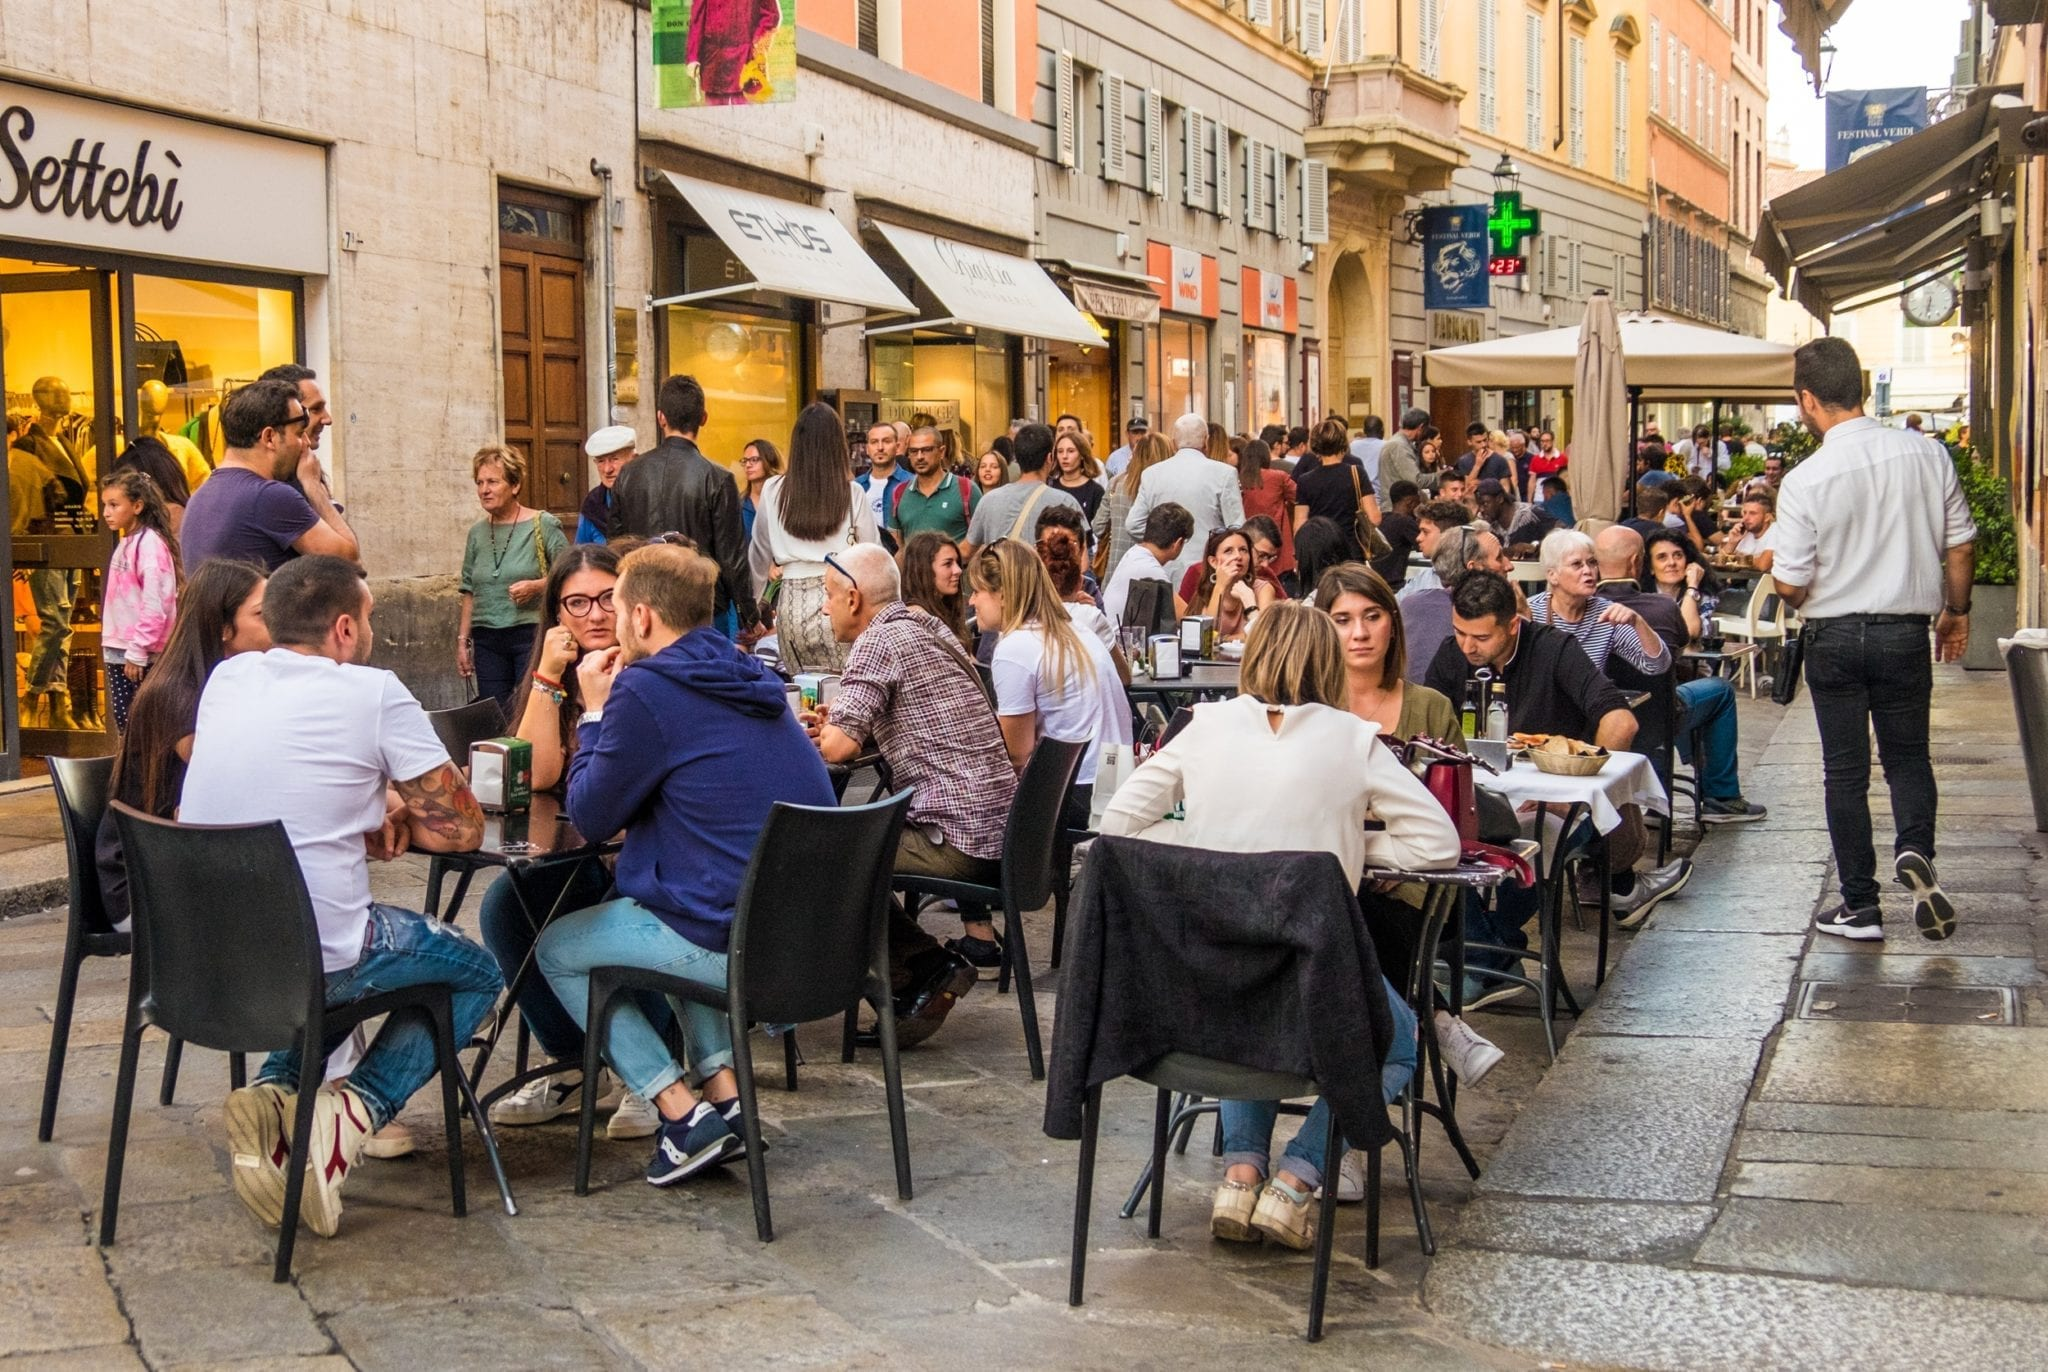 People sitting outside at a restaurant in Parma, Italy